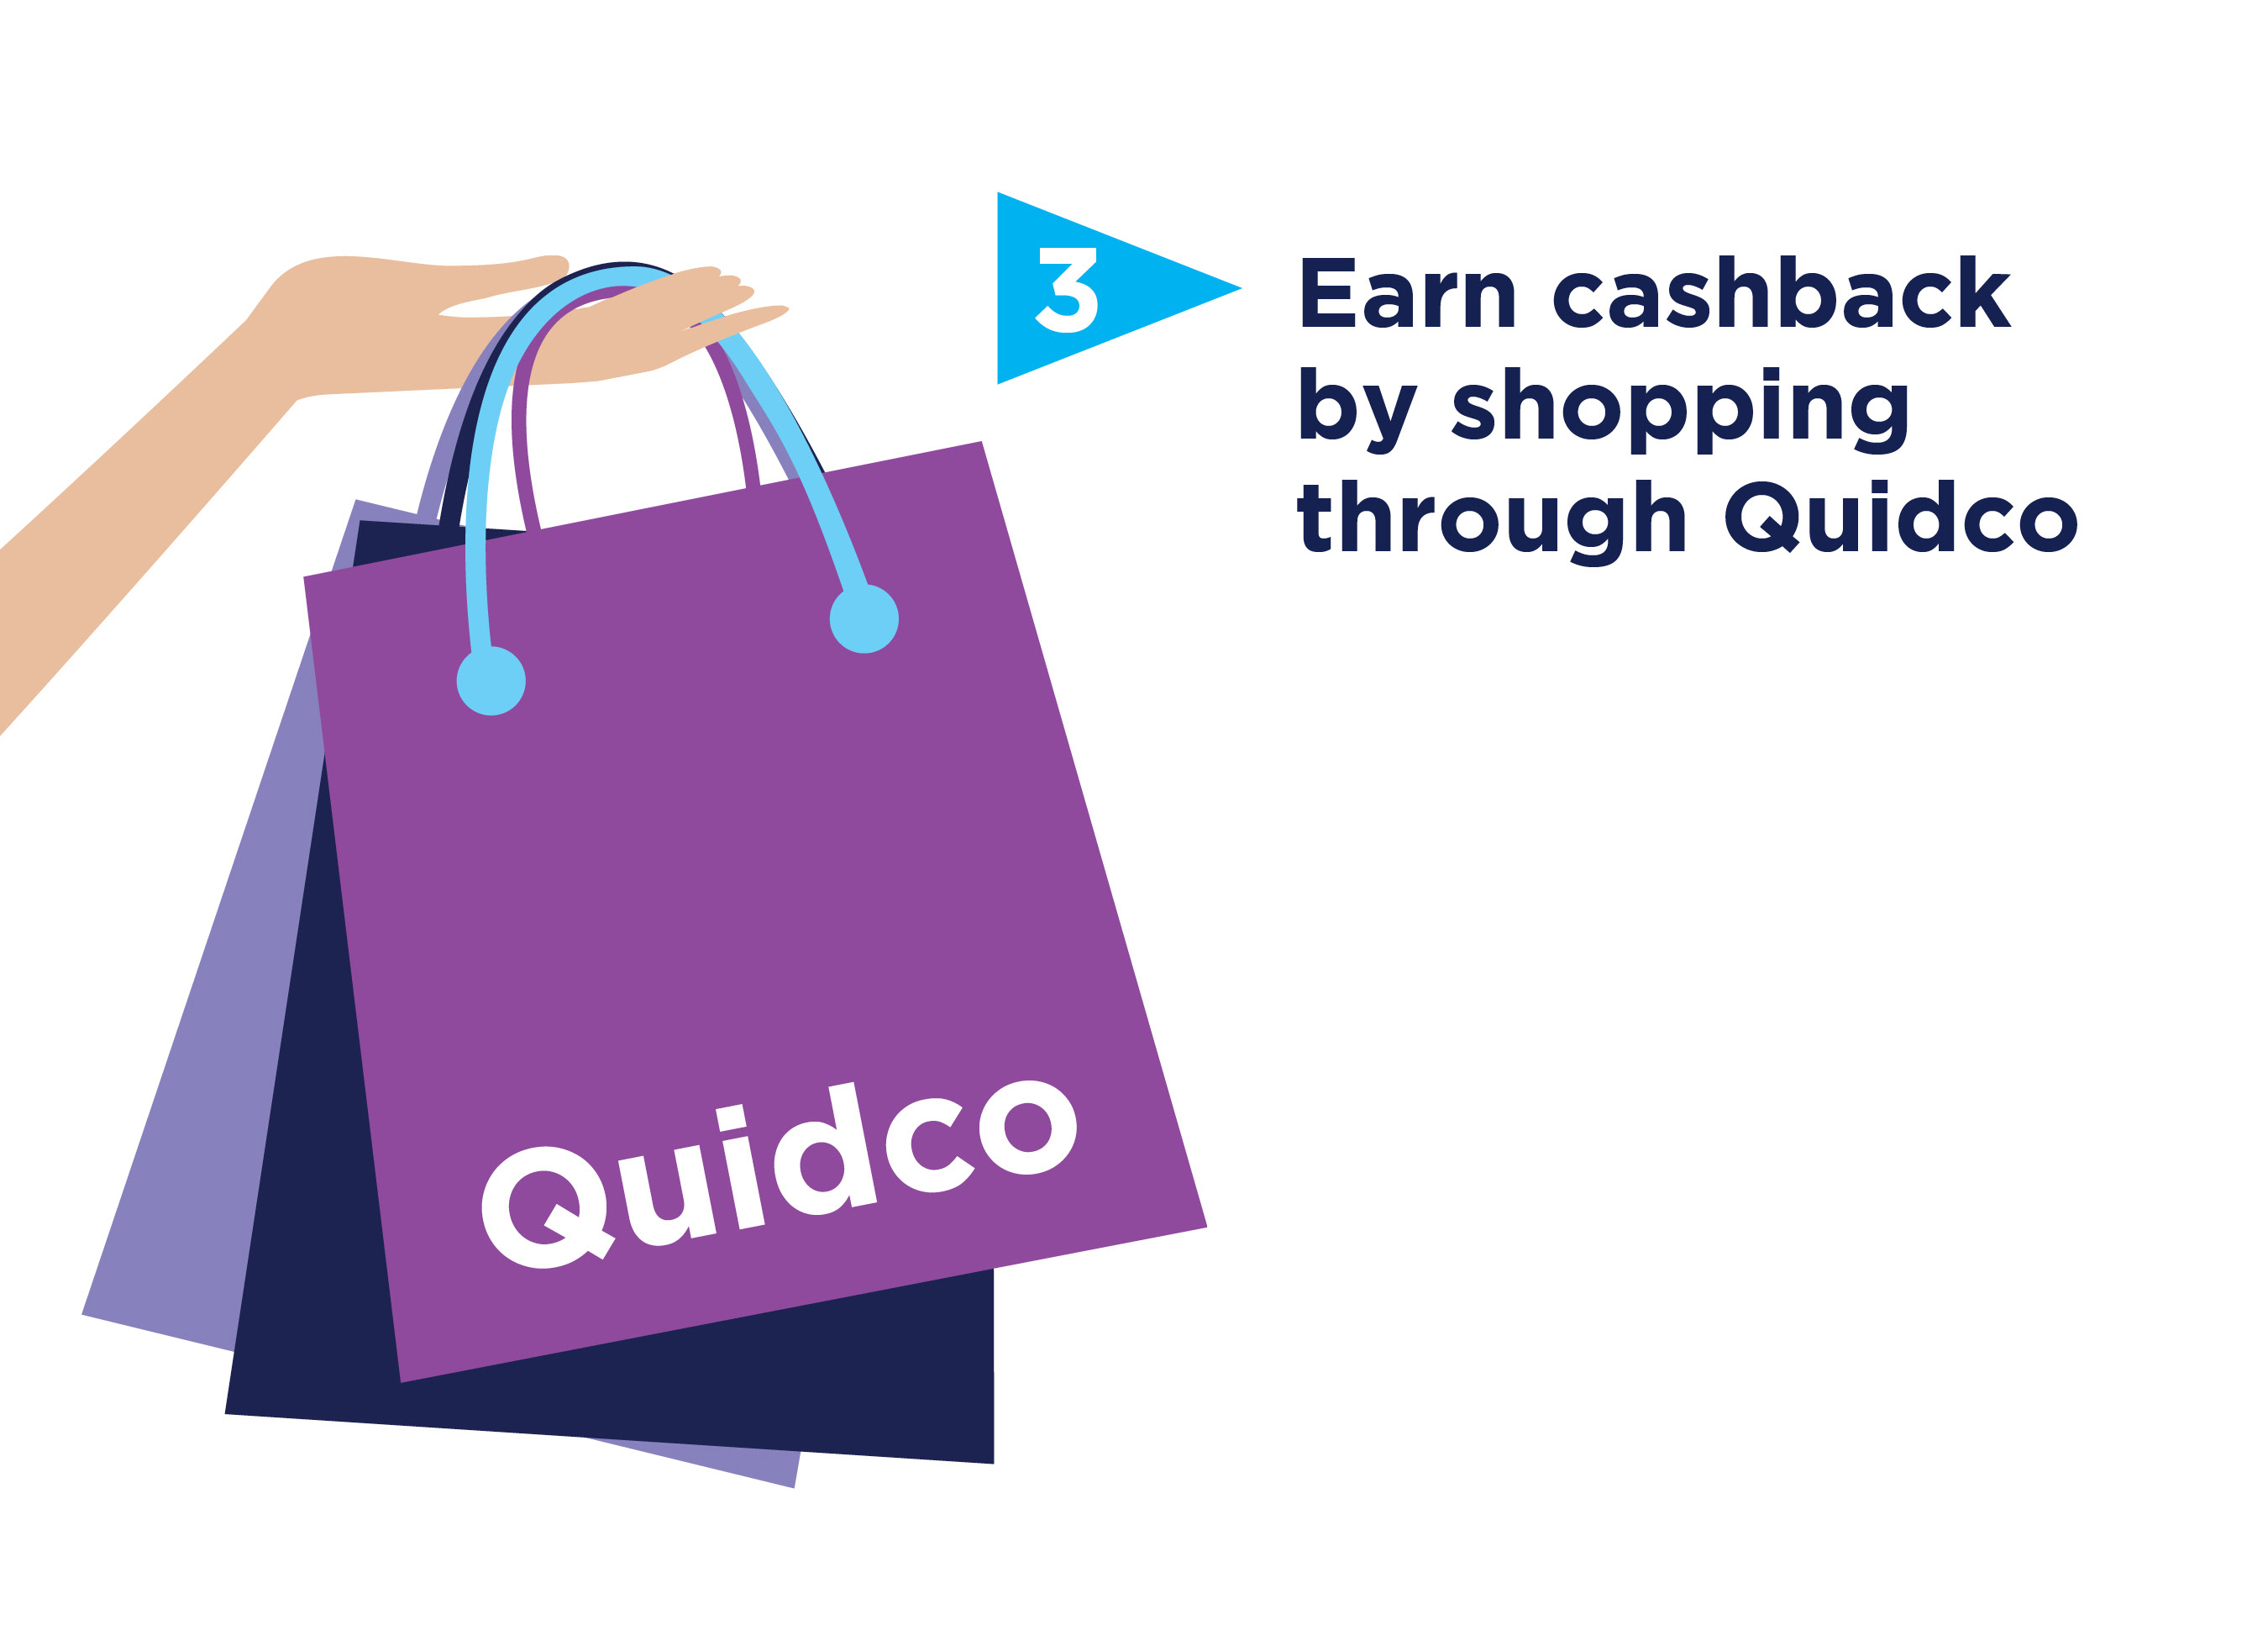 Earn cashback with Quidco